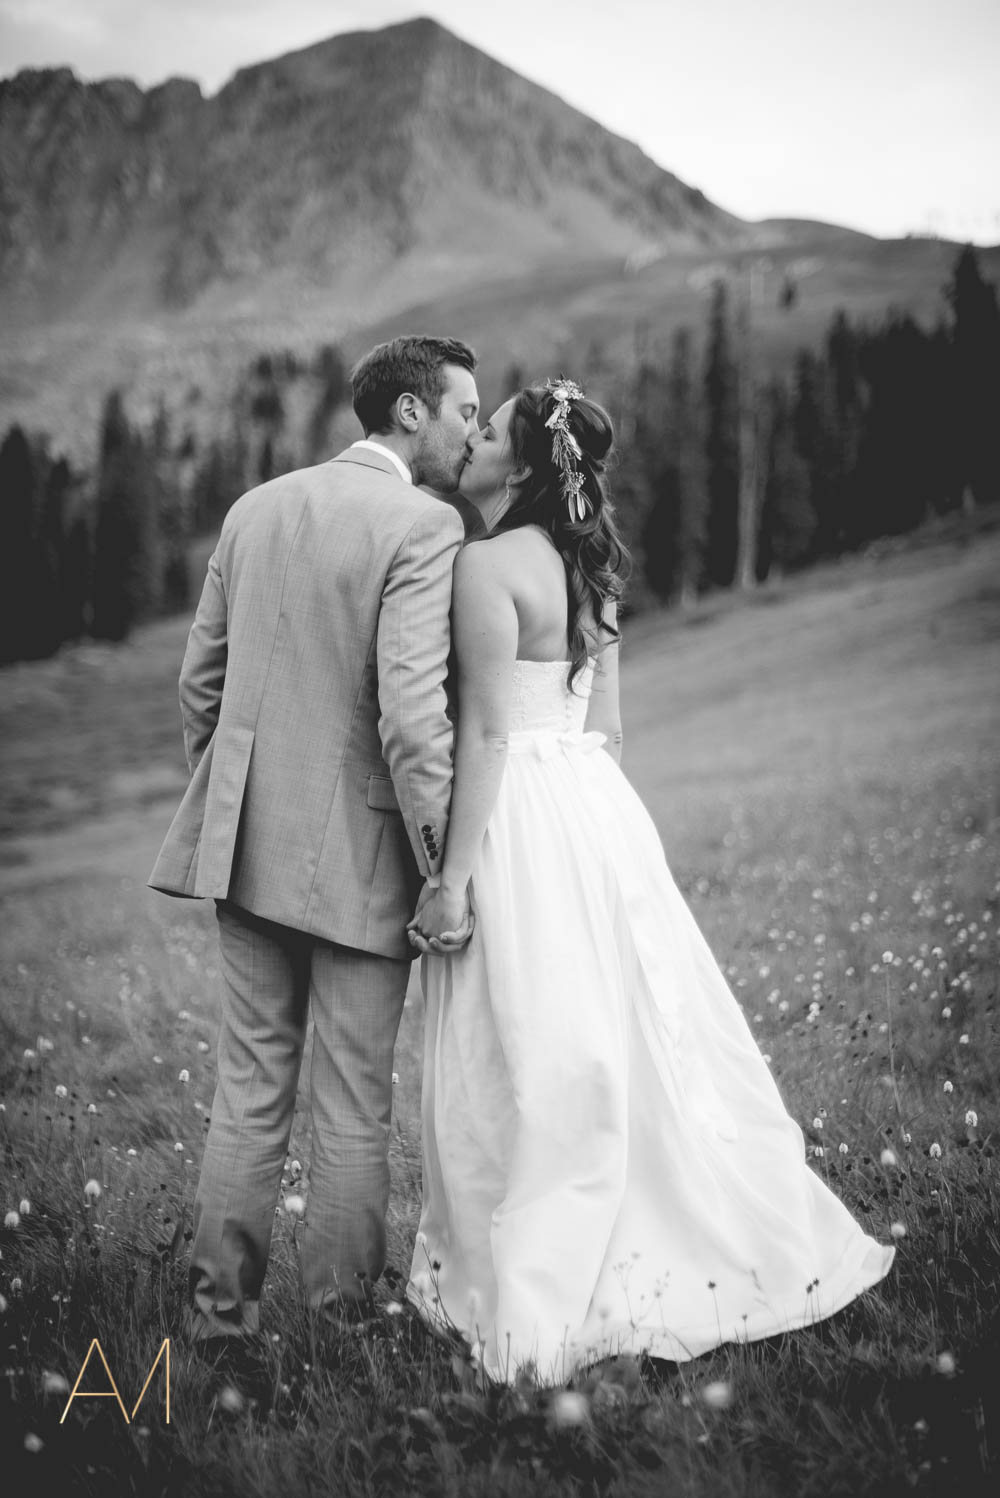 AshleighMillerWeddings-MadeleineAaron-Wedding-ArapahoeBasin-Colorado-4949.jpg